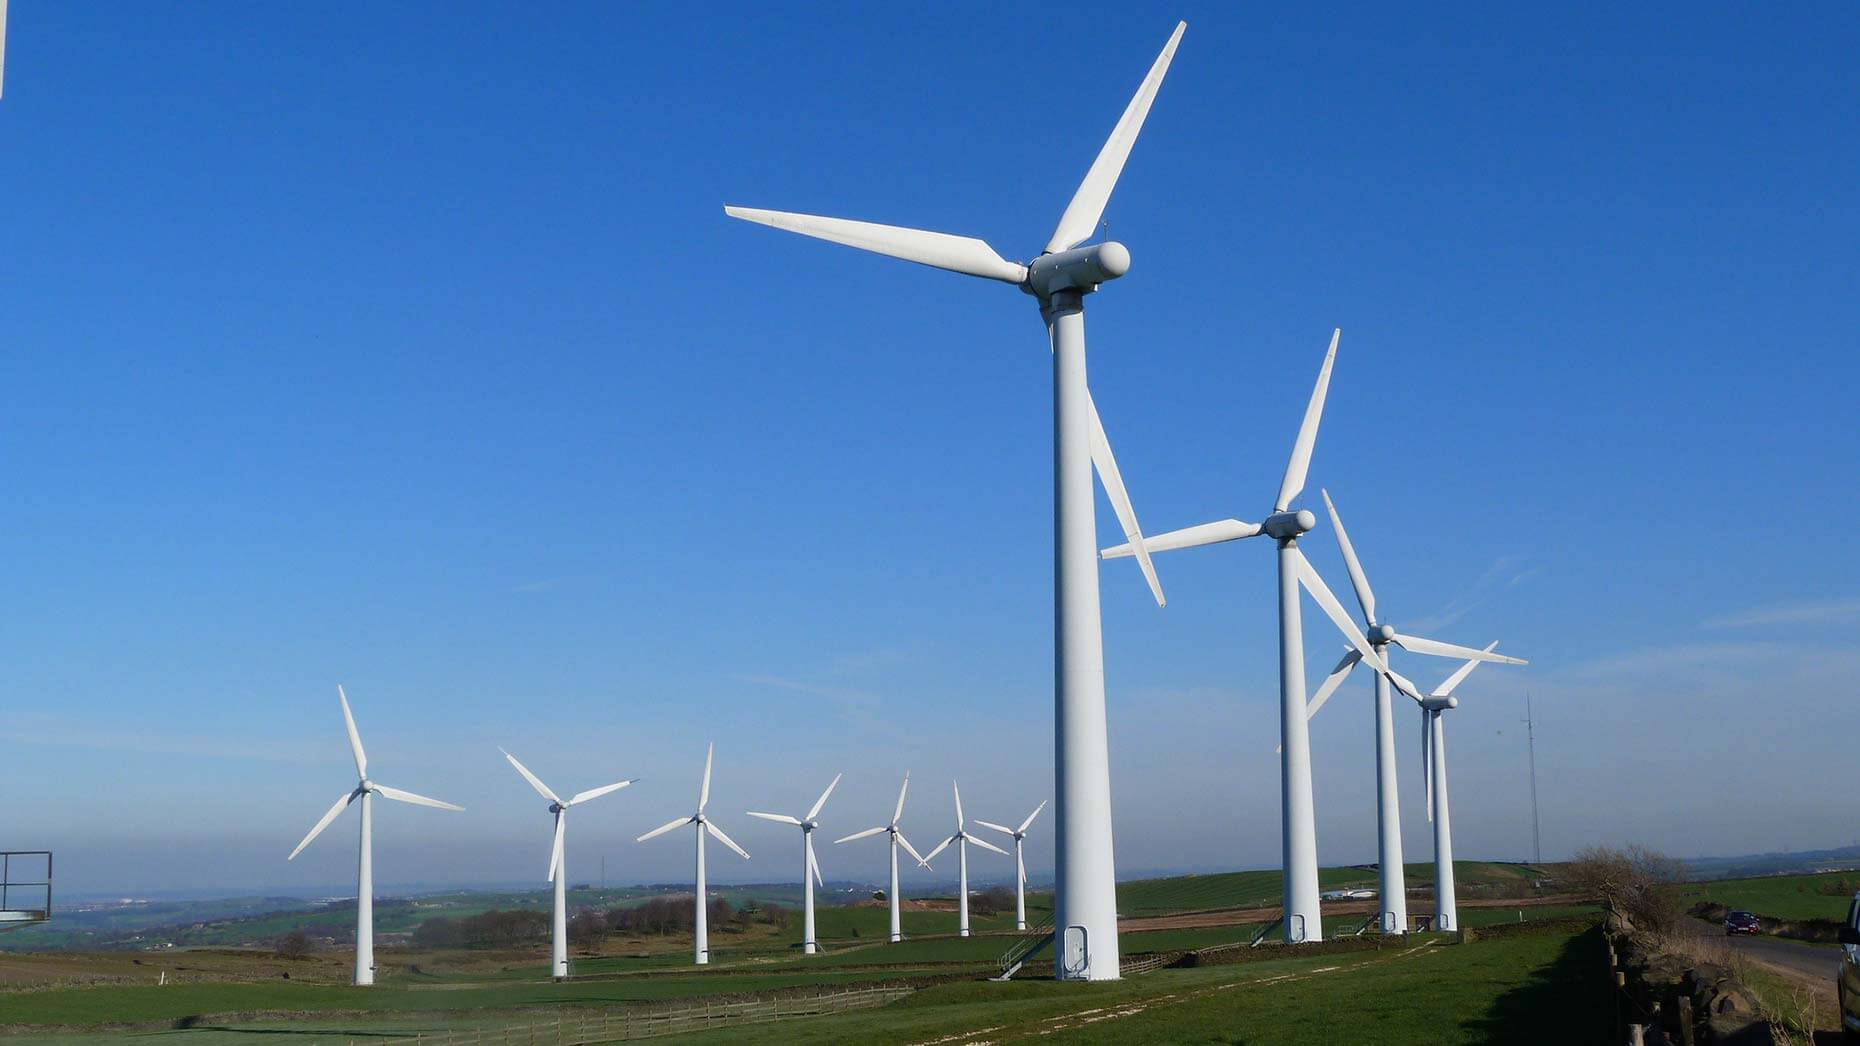 Wind farm - North Carolina